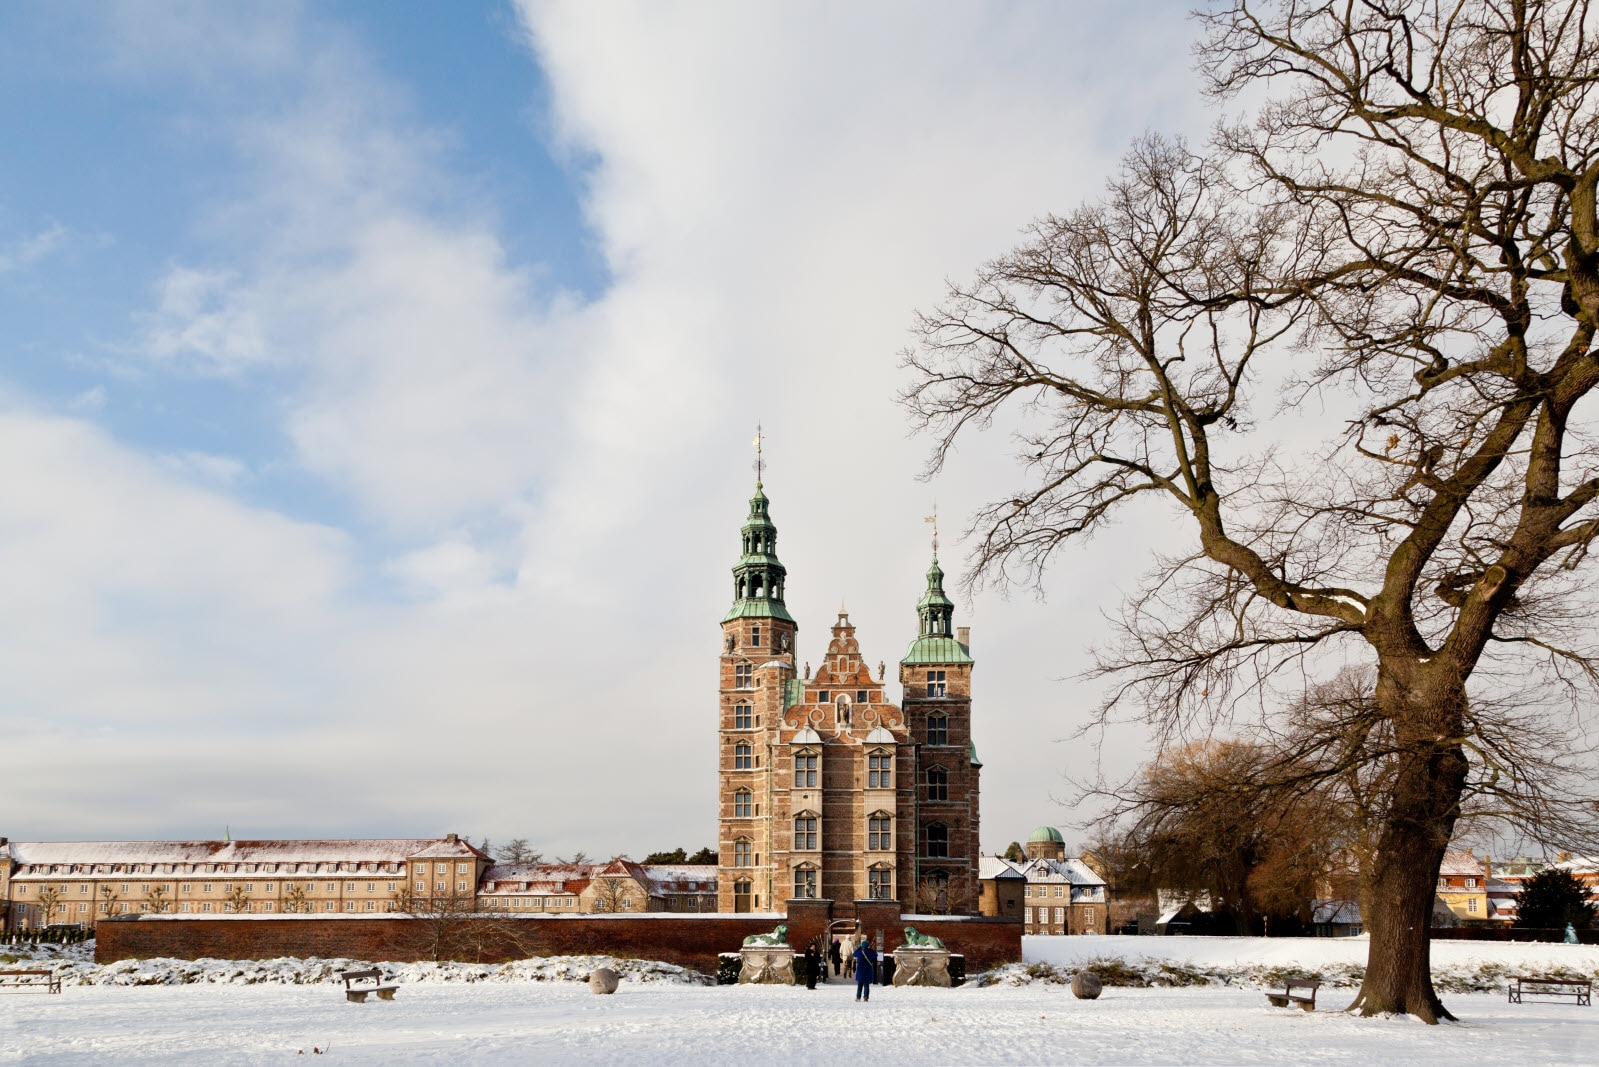 Rosenborg Castle at winter time